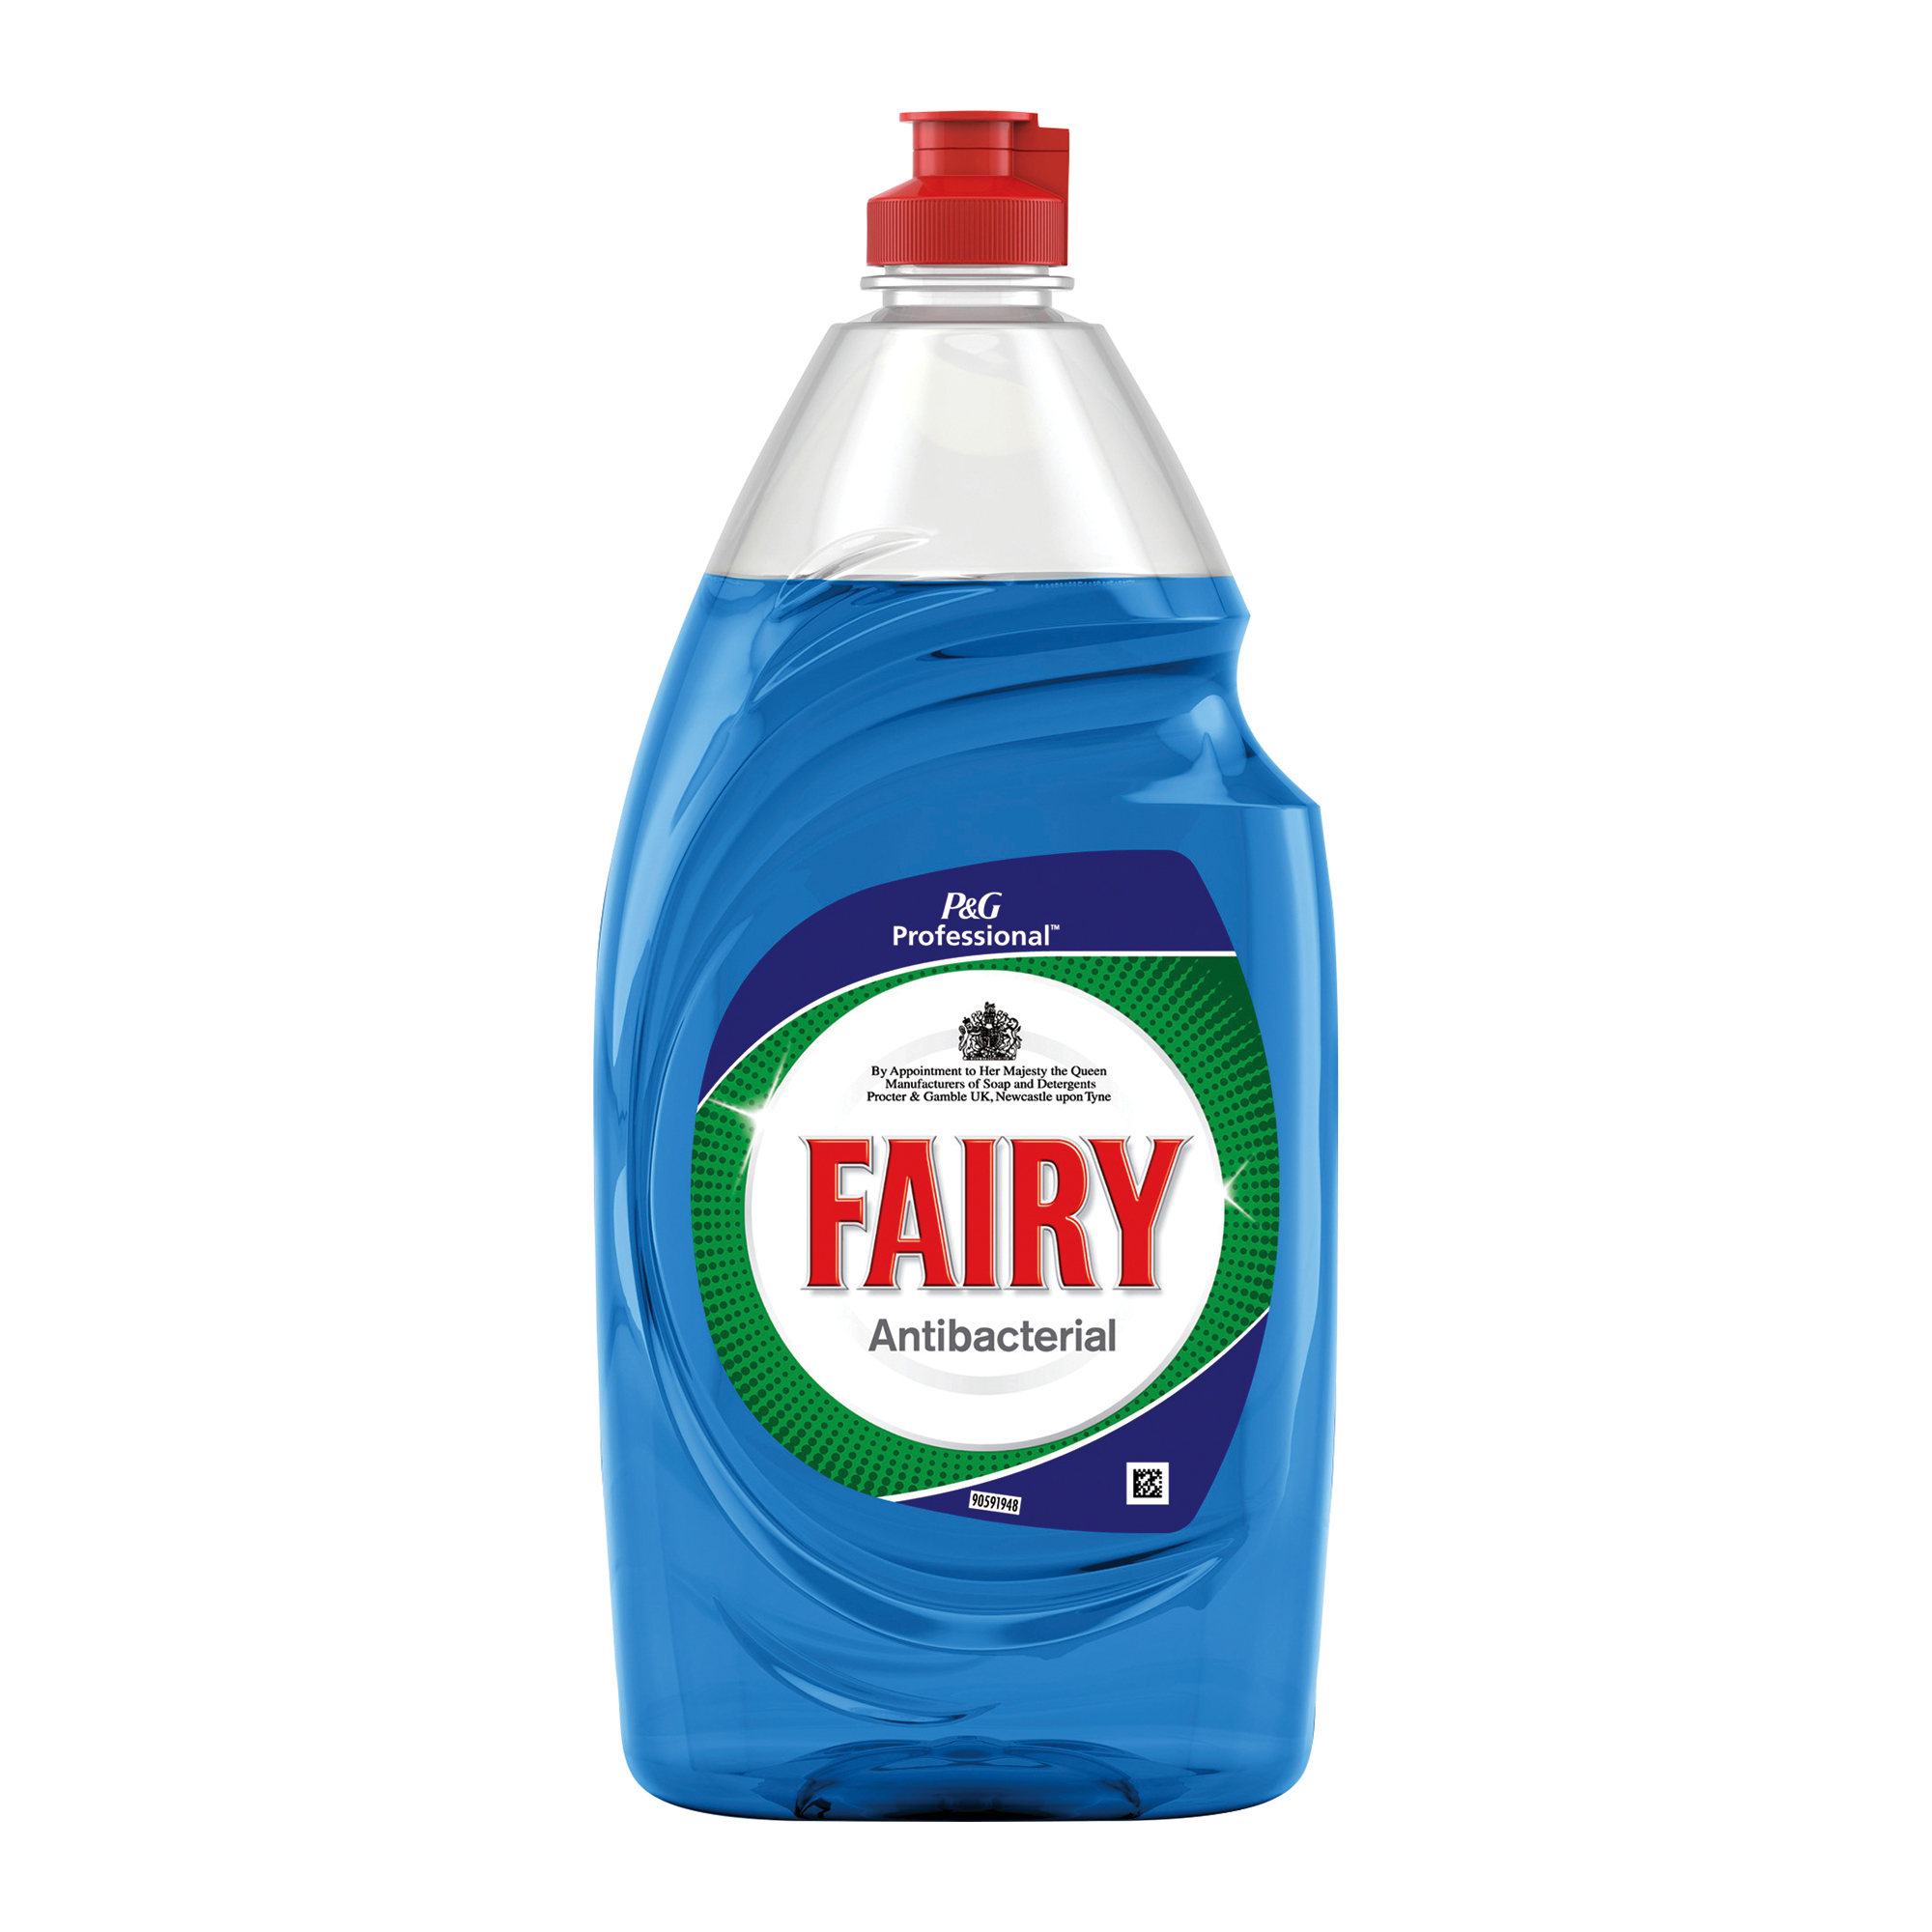 Dishwashing products Fairy Professional Antibac Washing Up Liquid 870ml Ref 73405